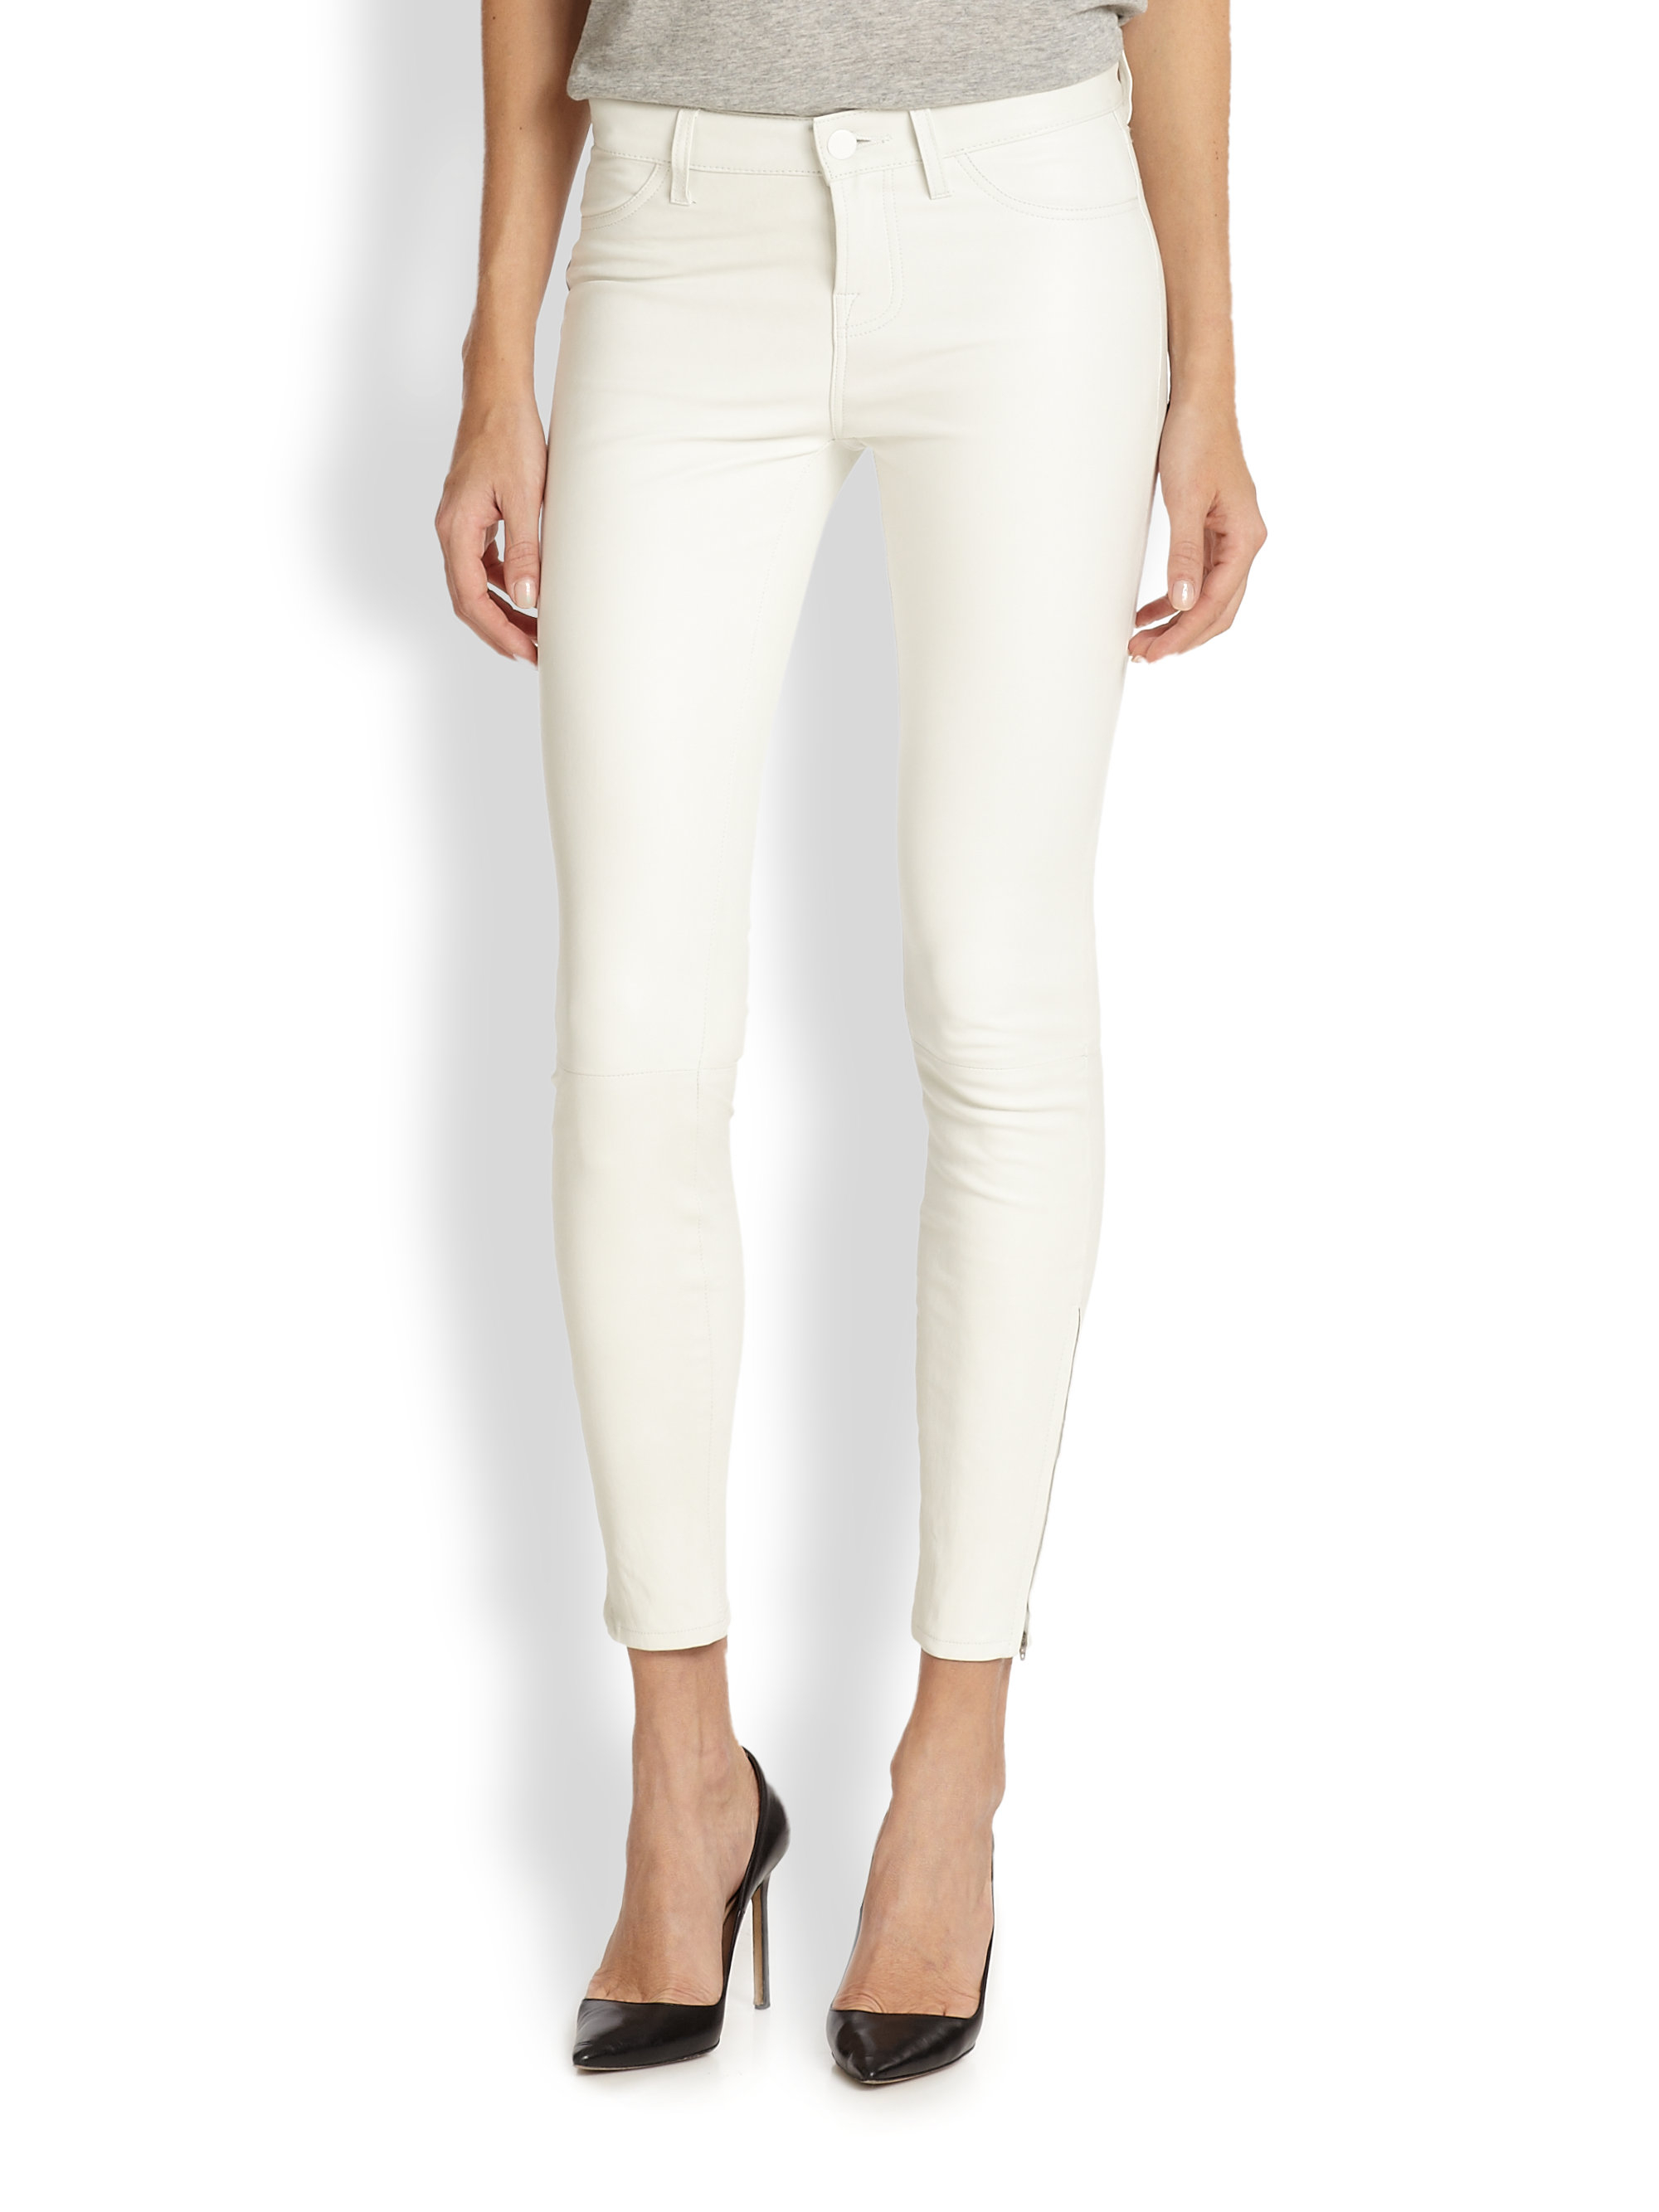 J brand Ankle Zip Leather Skinny Jeans in White | Lyst